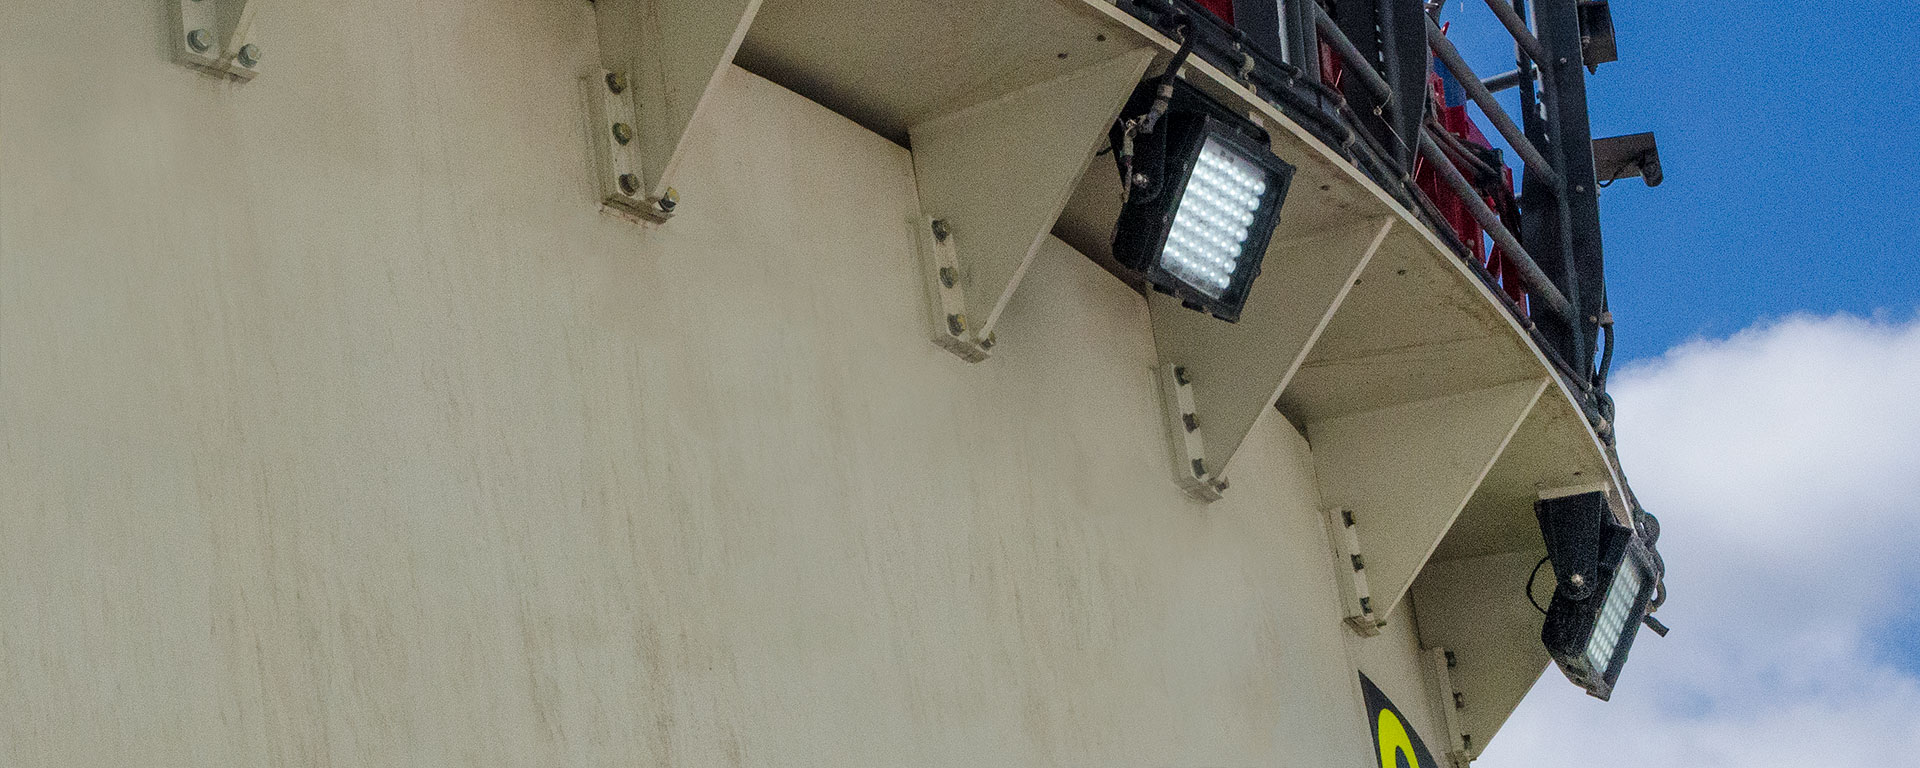 The CP56 LED mining floodlight in application, installed on a mobile plant